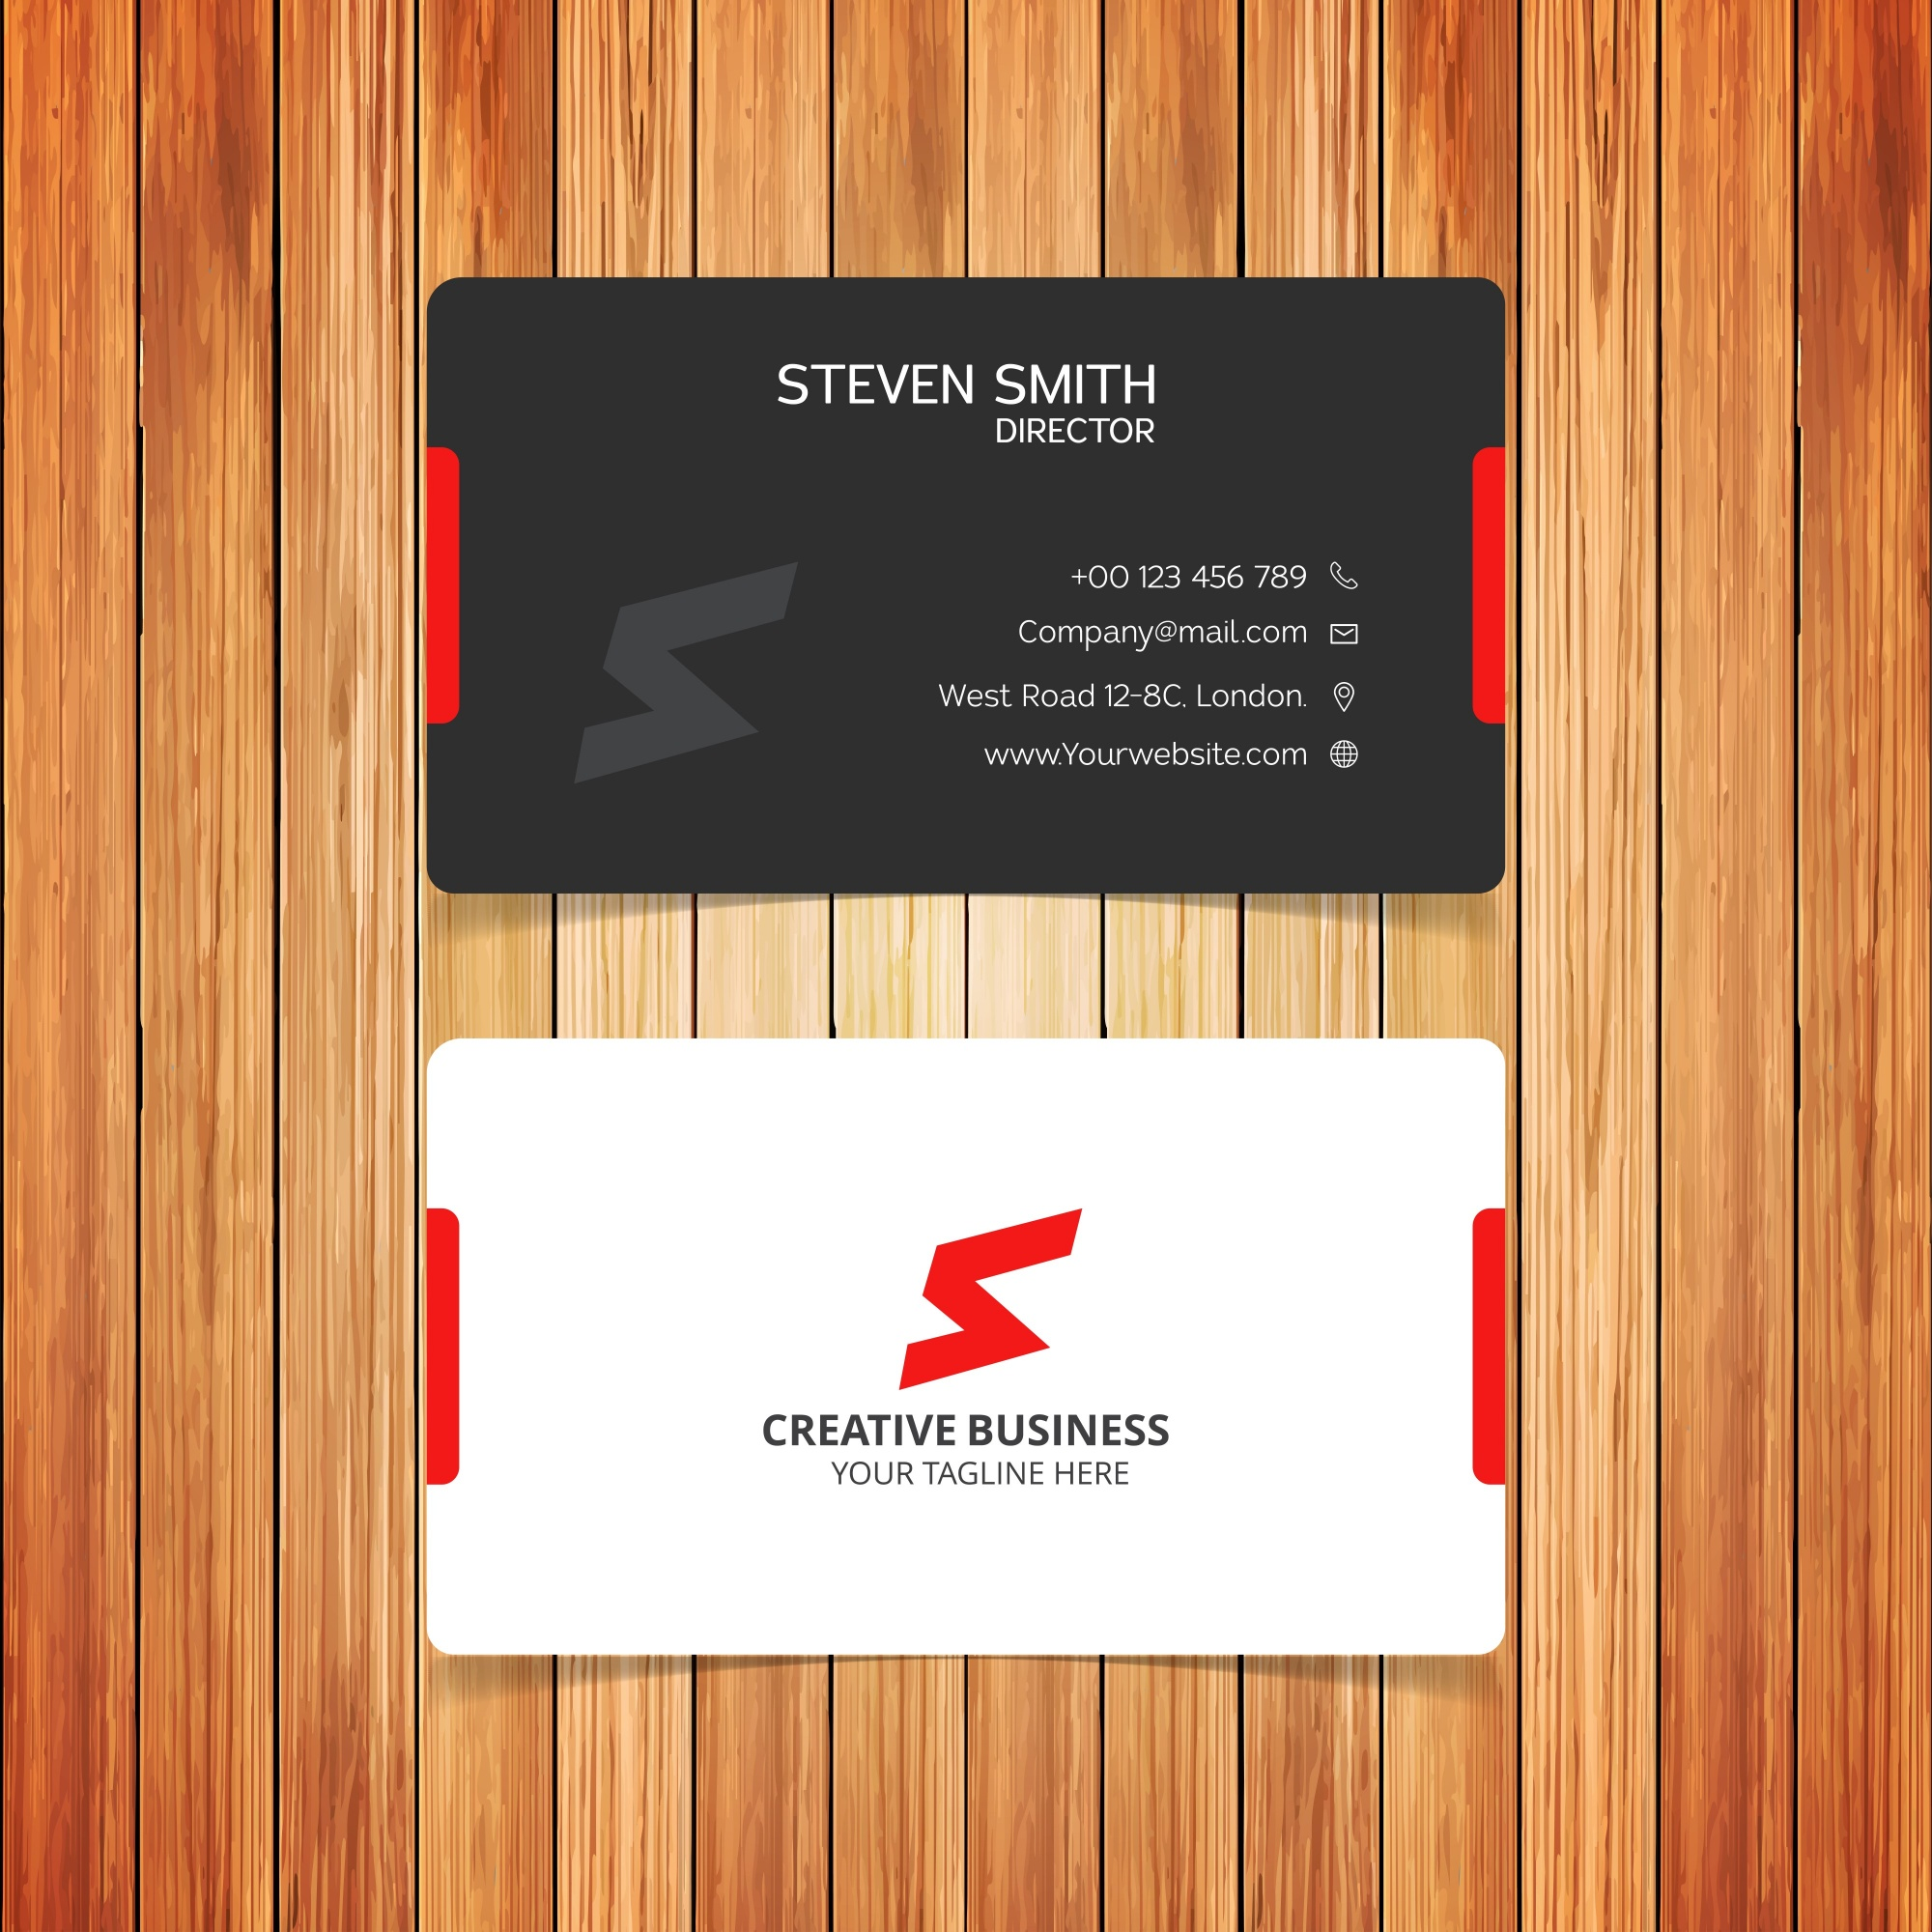 Elegant business card with red details